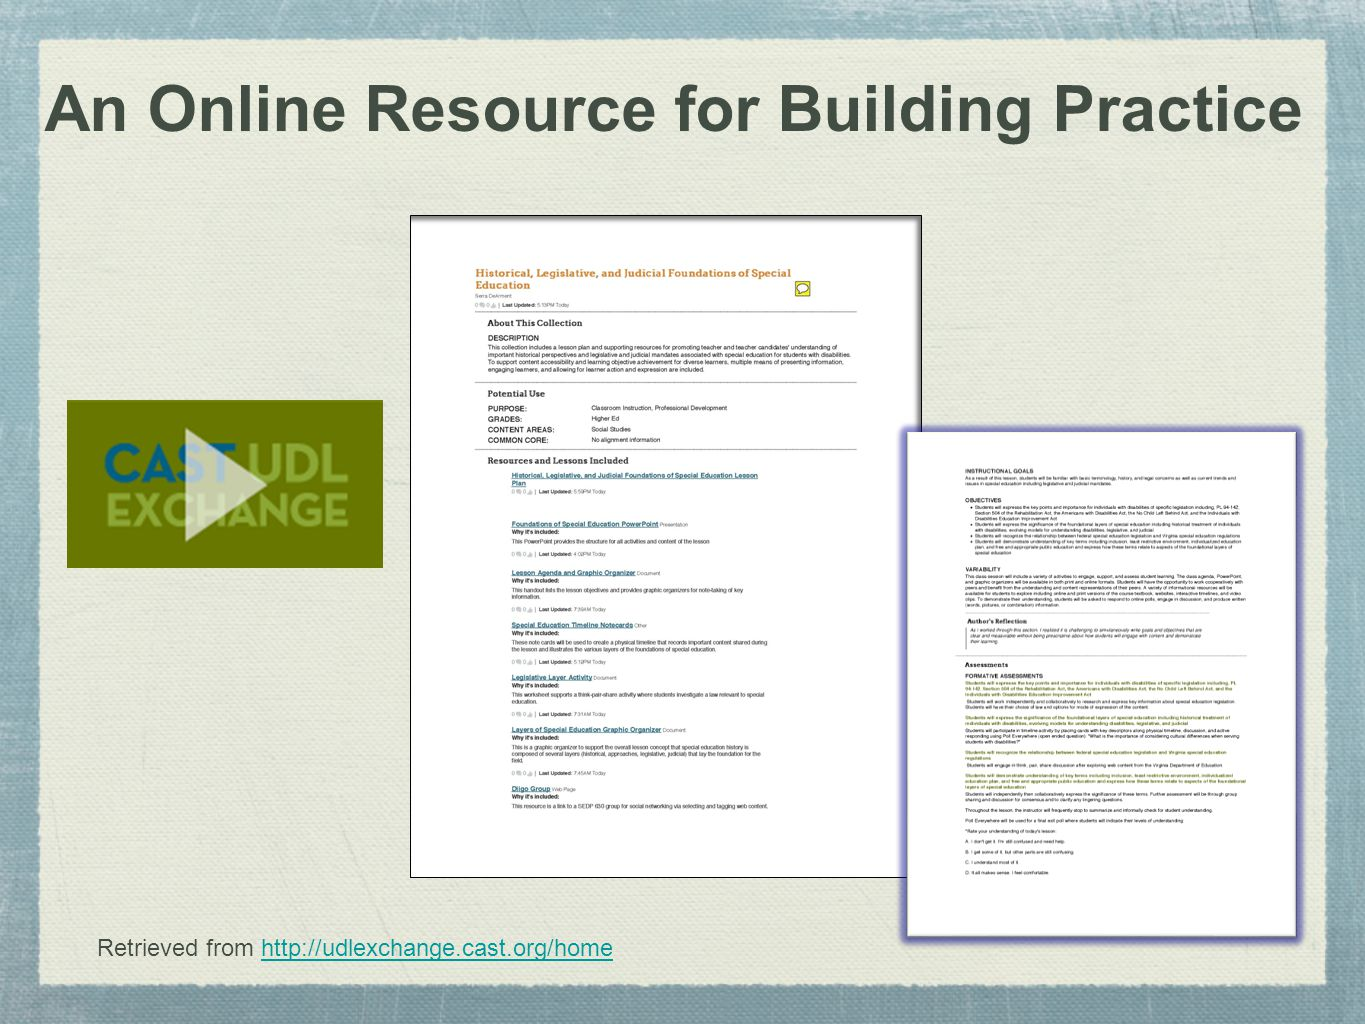 Retrieved from http://udlexchange.cast.org/homehttp://udlexchange.cast.org/home An Online Resource for Building Practice